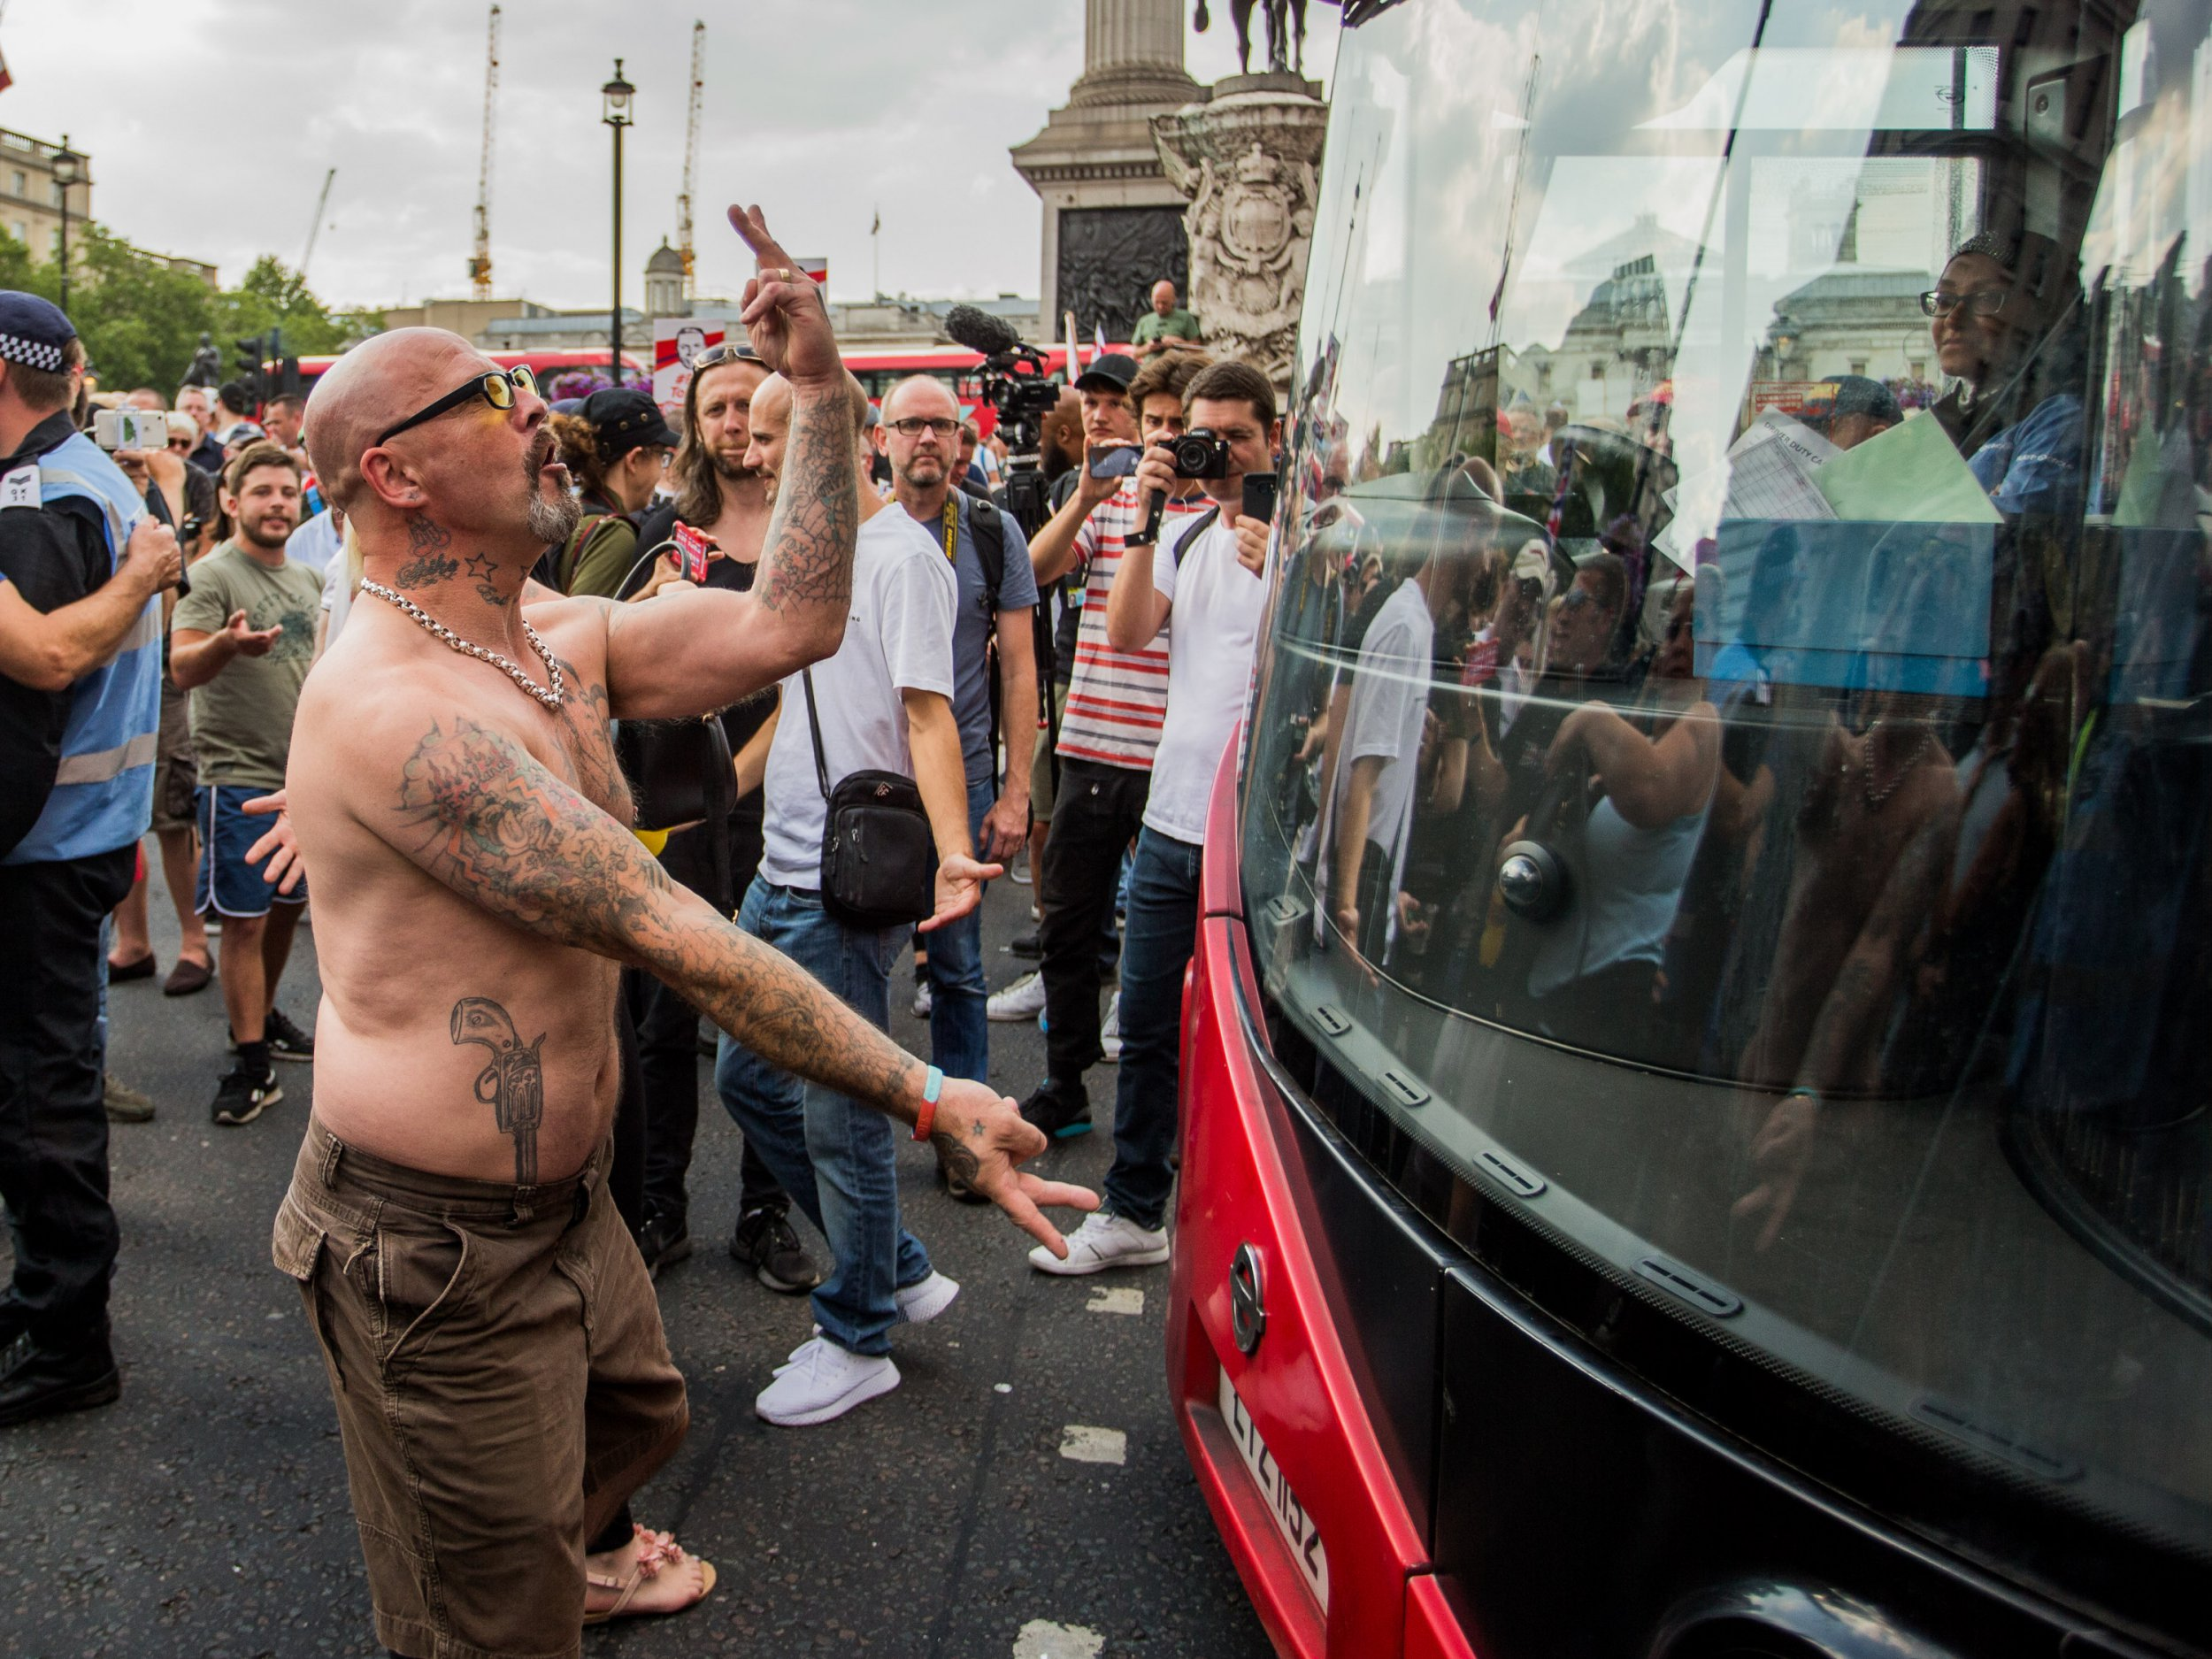 Supporters of jailed EDL founder Tommy Robinson bring traffic to a halt in London's Trafalgar Square following rally earlier in the day on Whitehall. Featuring: Atmosphere, View Where: London, England, United Kingdom When: 14 Jul 2018 Credit: Wheatley/WENN